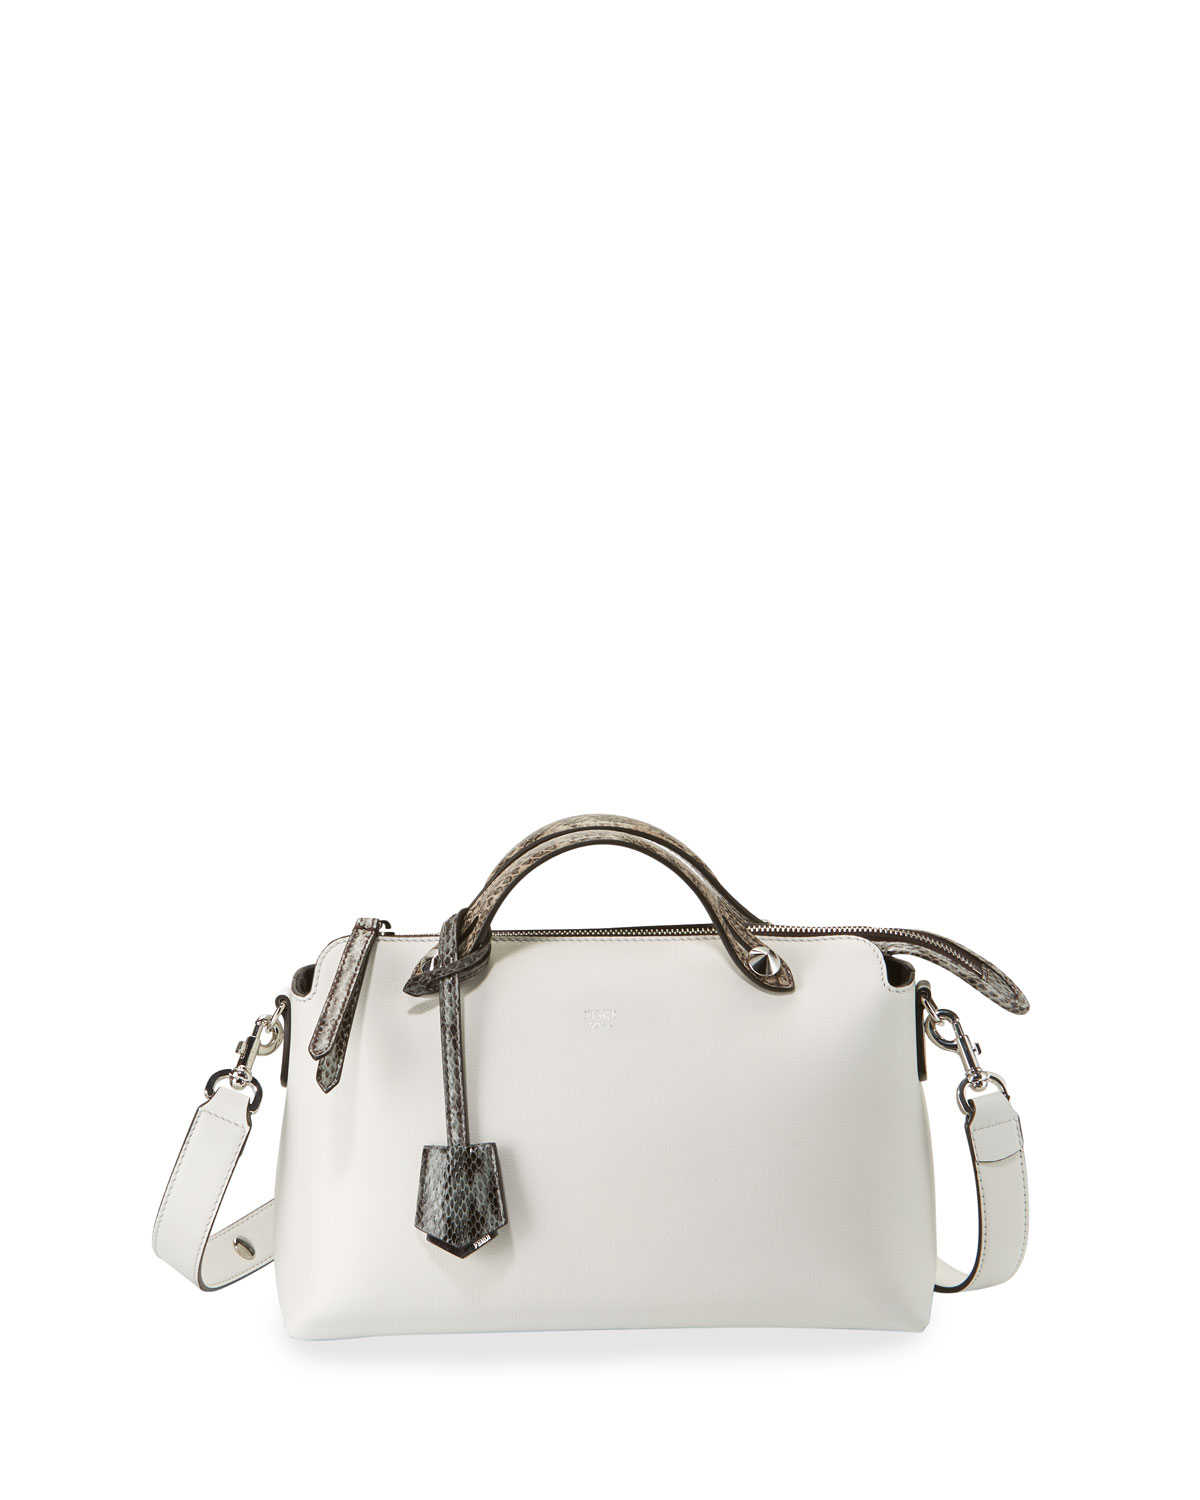 9fb6bf3d6 Fendi By the Way Small Leather & Snakeskin Satchel Bag | Neiman Marcus